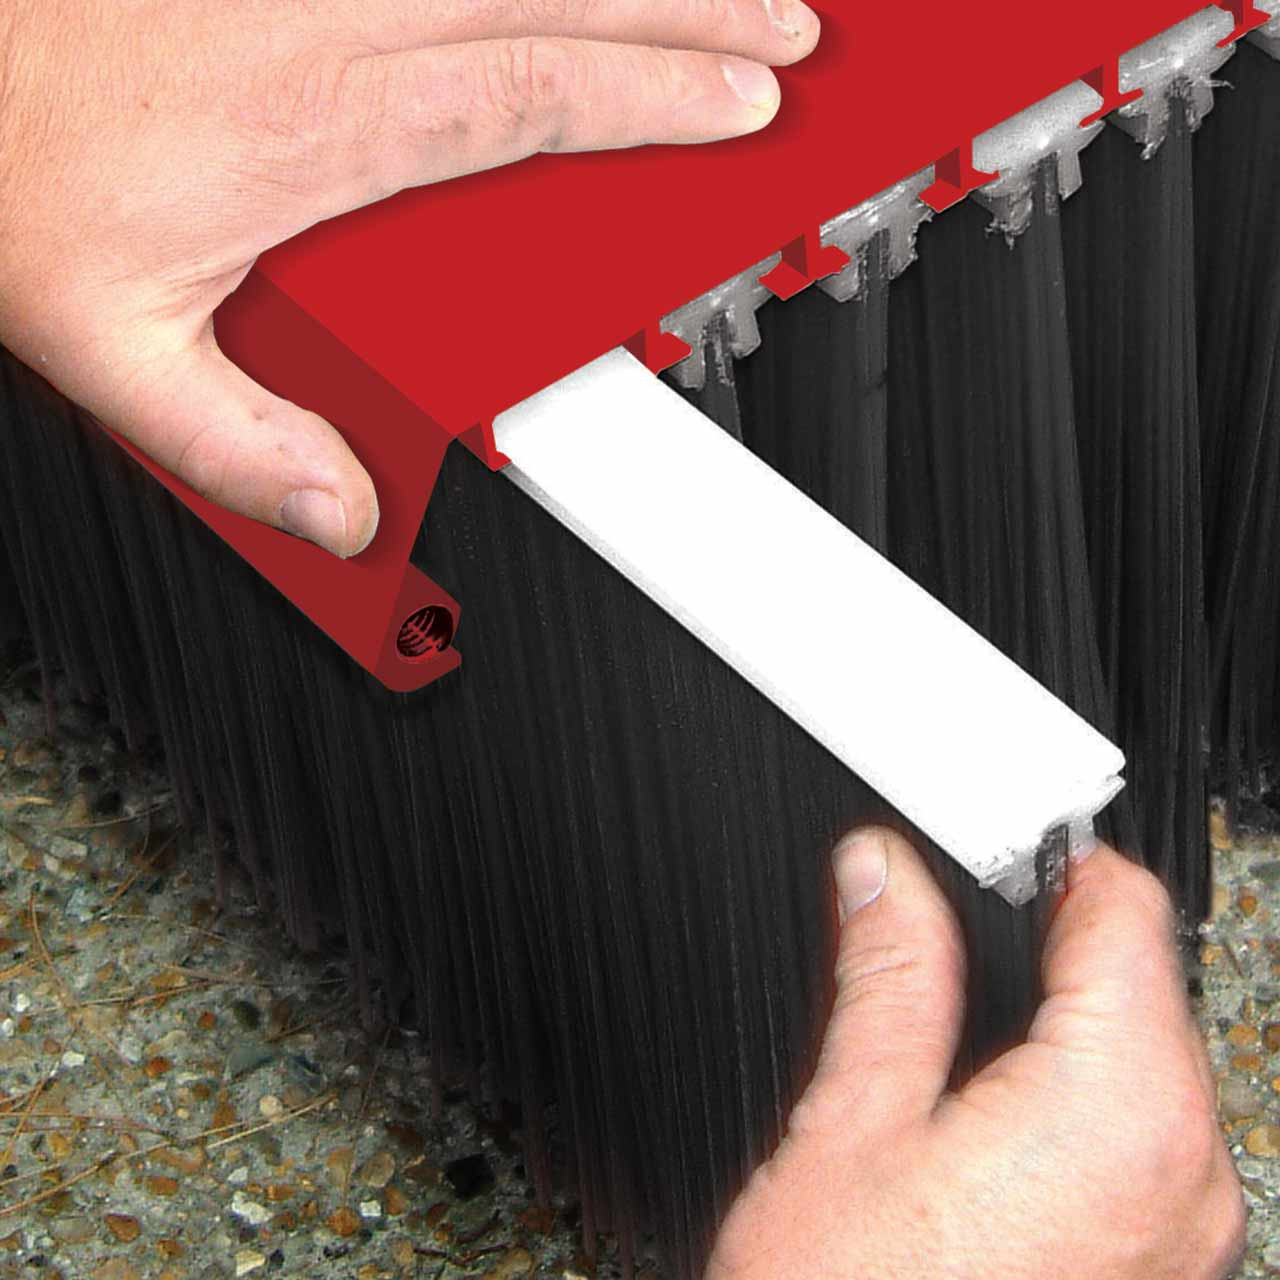 Forklift Mounted Broom - Value Series Replacement Brush Kit